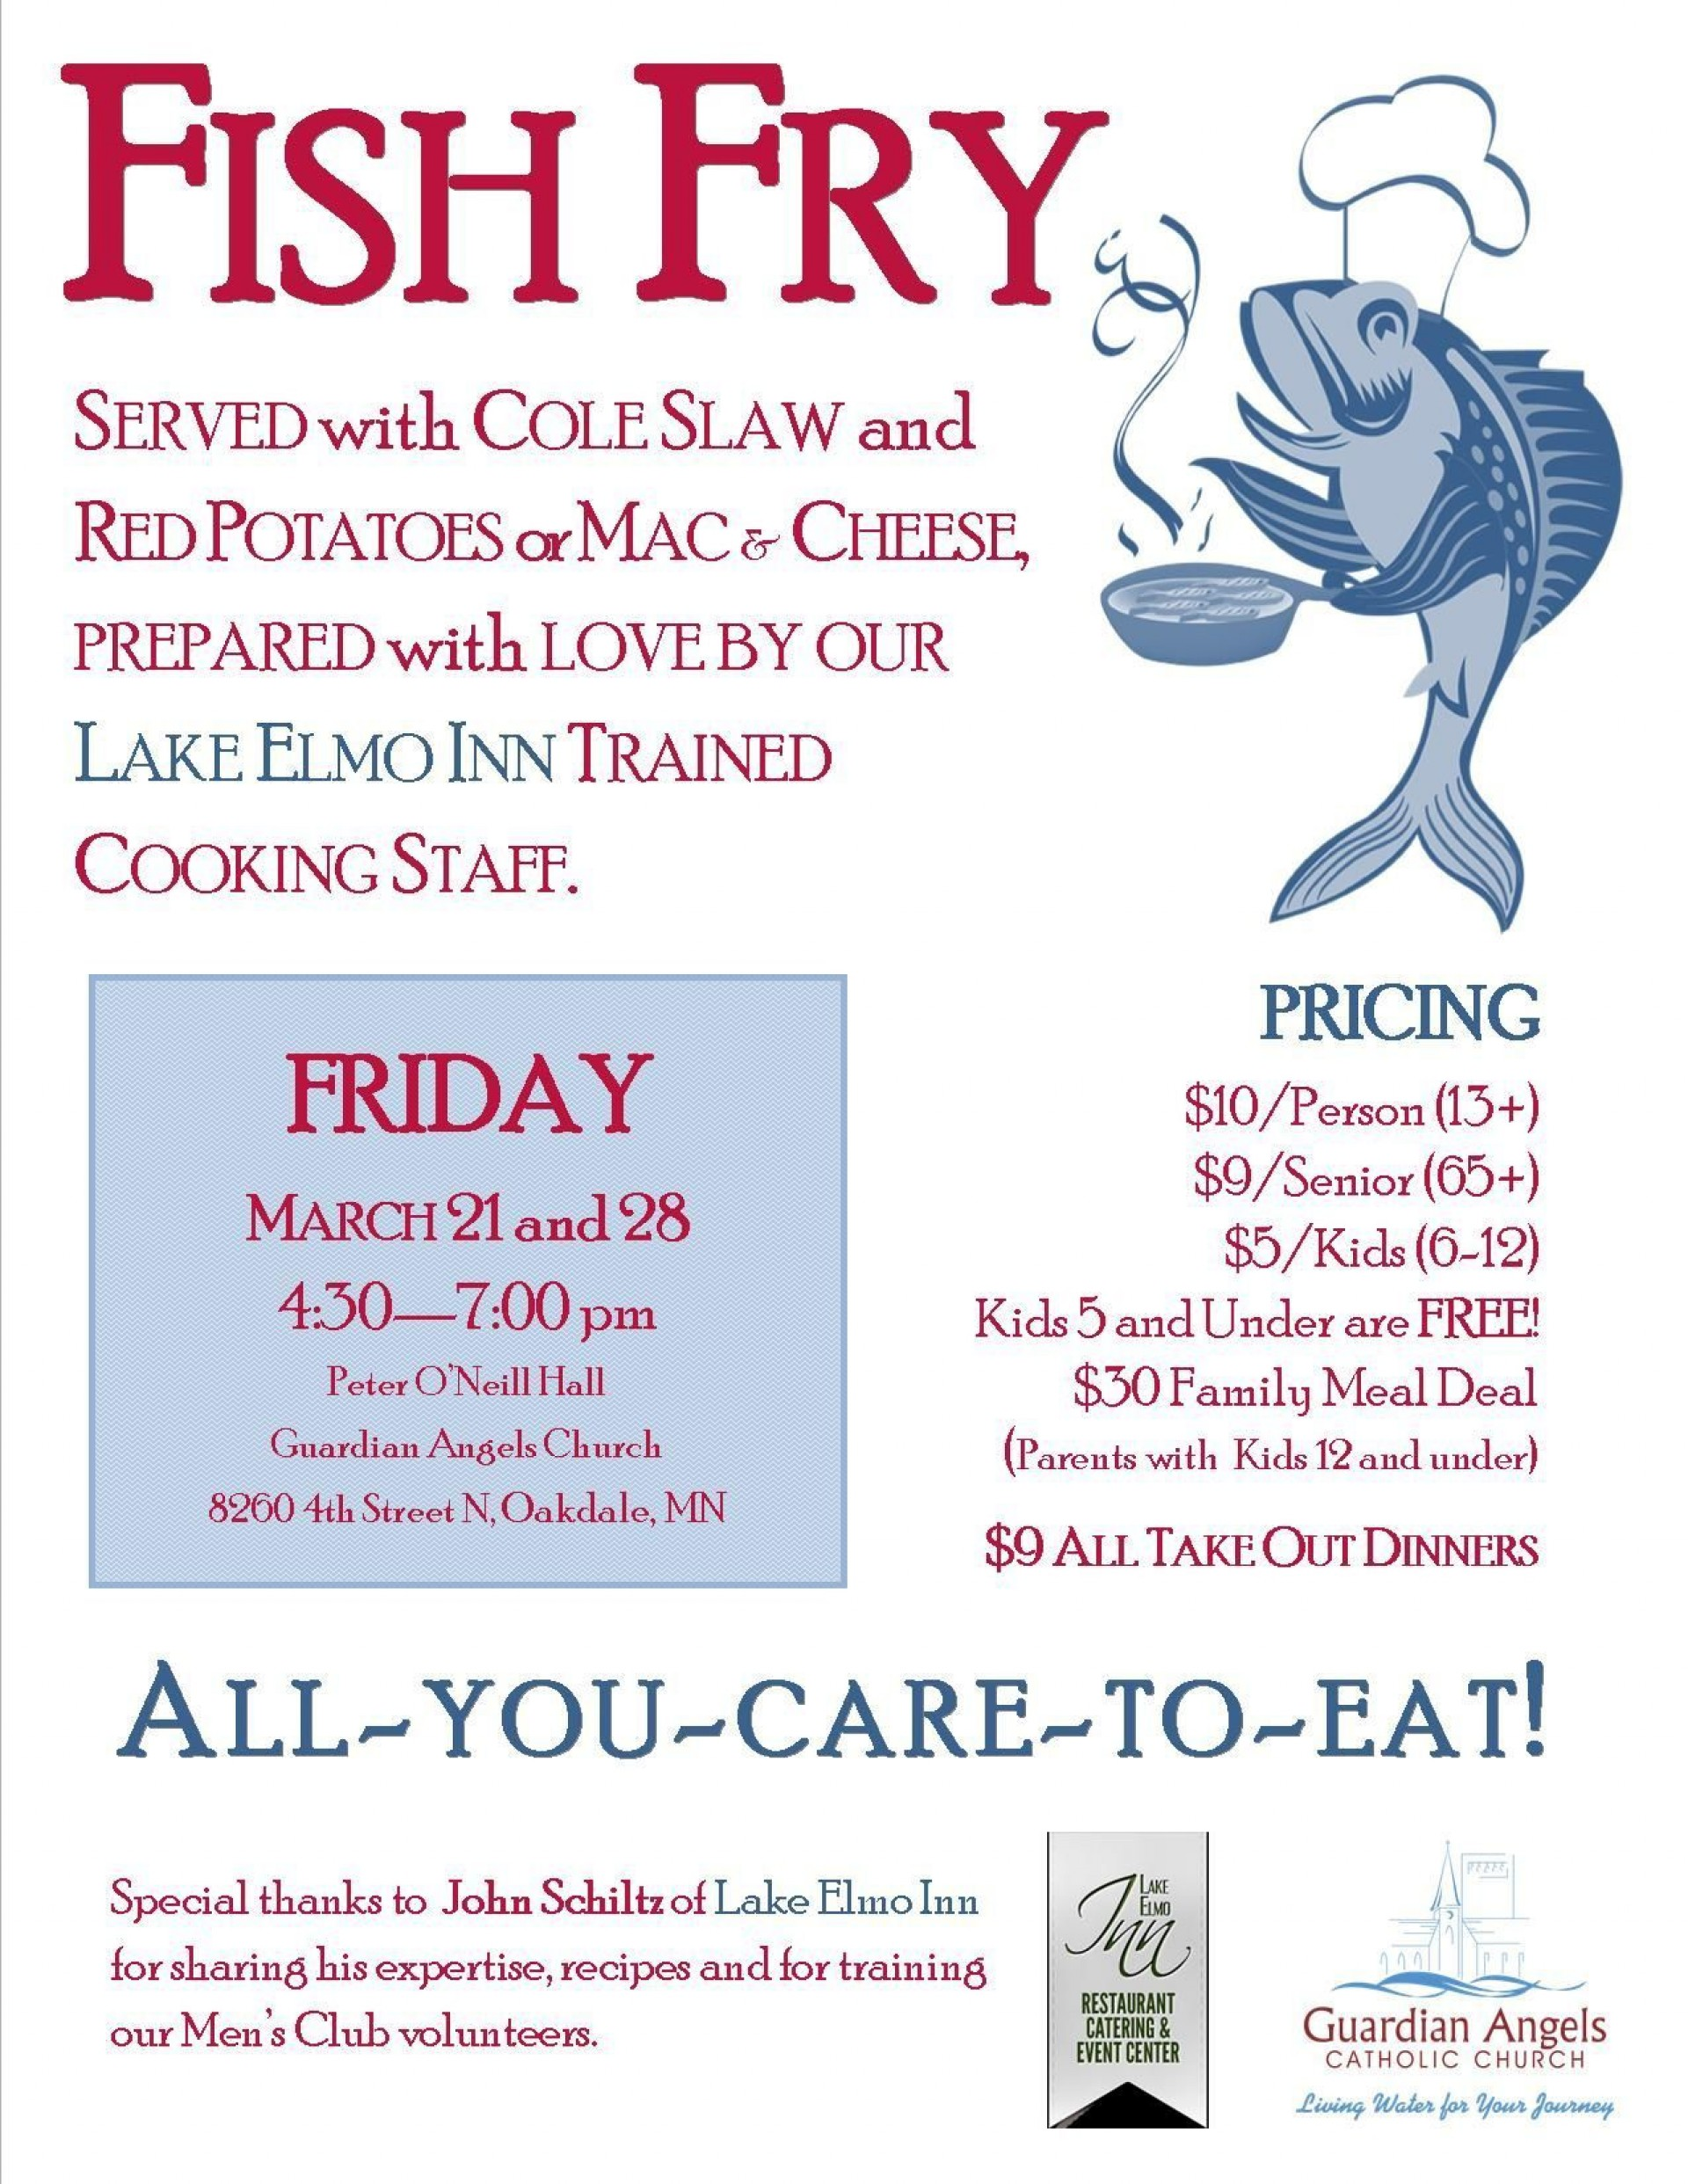 000 Simple Fish Fry Flyer Template High Def  Printable Free Powerpoint Psd1920